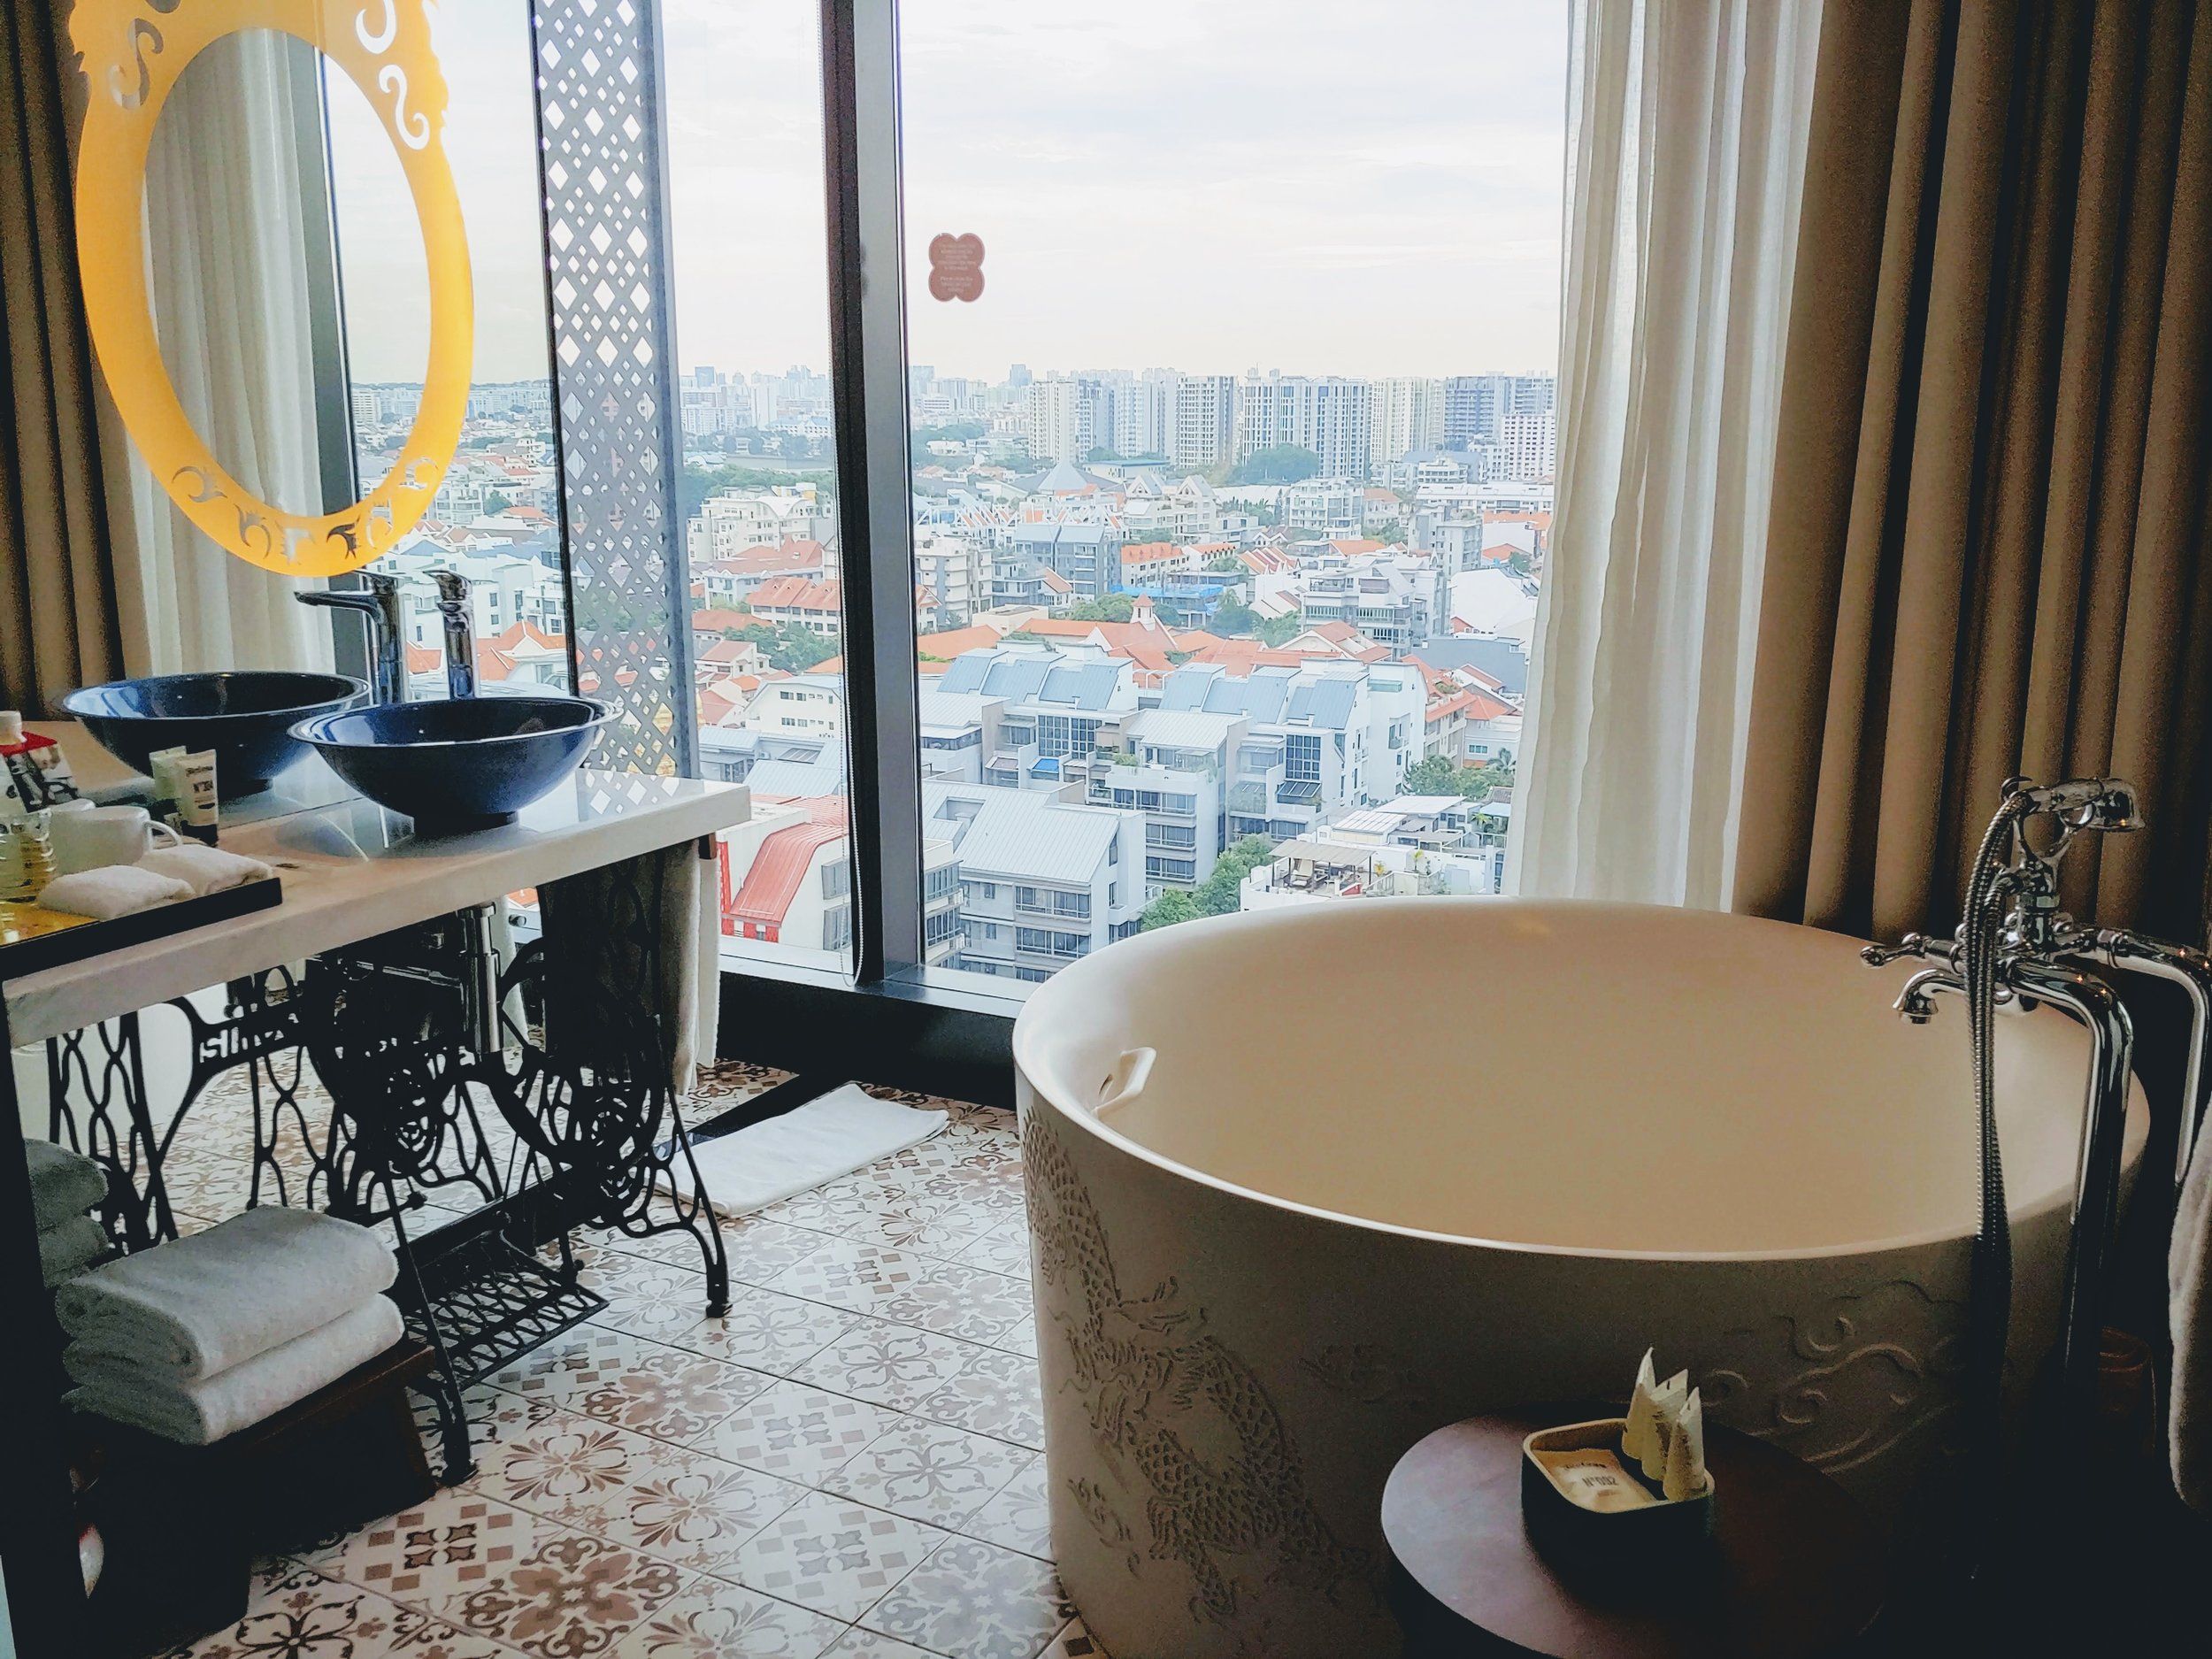 I love the bathtub and the details of the vanity area, worth the extra top up to upgrade and treat myself to one of the best staycation ever. I can just stay here all day all night long and will worth the pruney-ness of my skin. Ok maybe not LOL. But you get what I mean haha